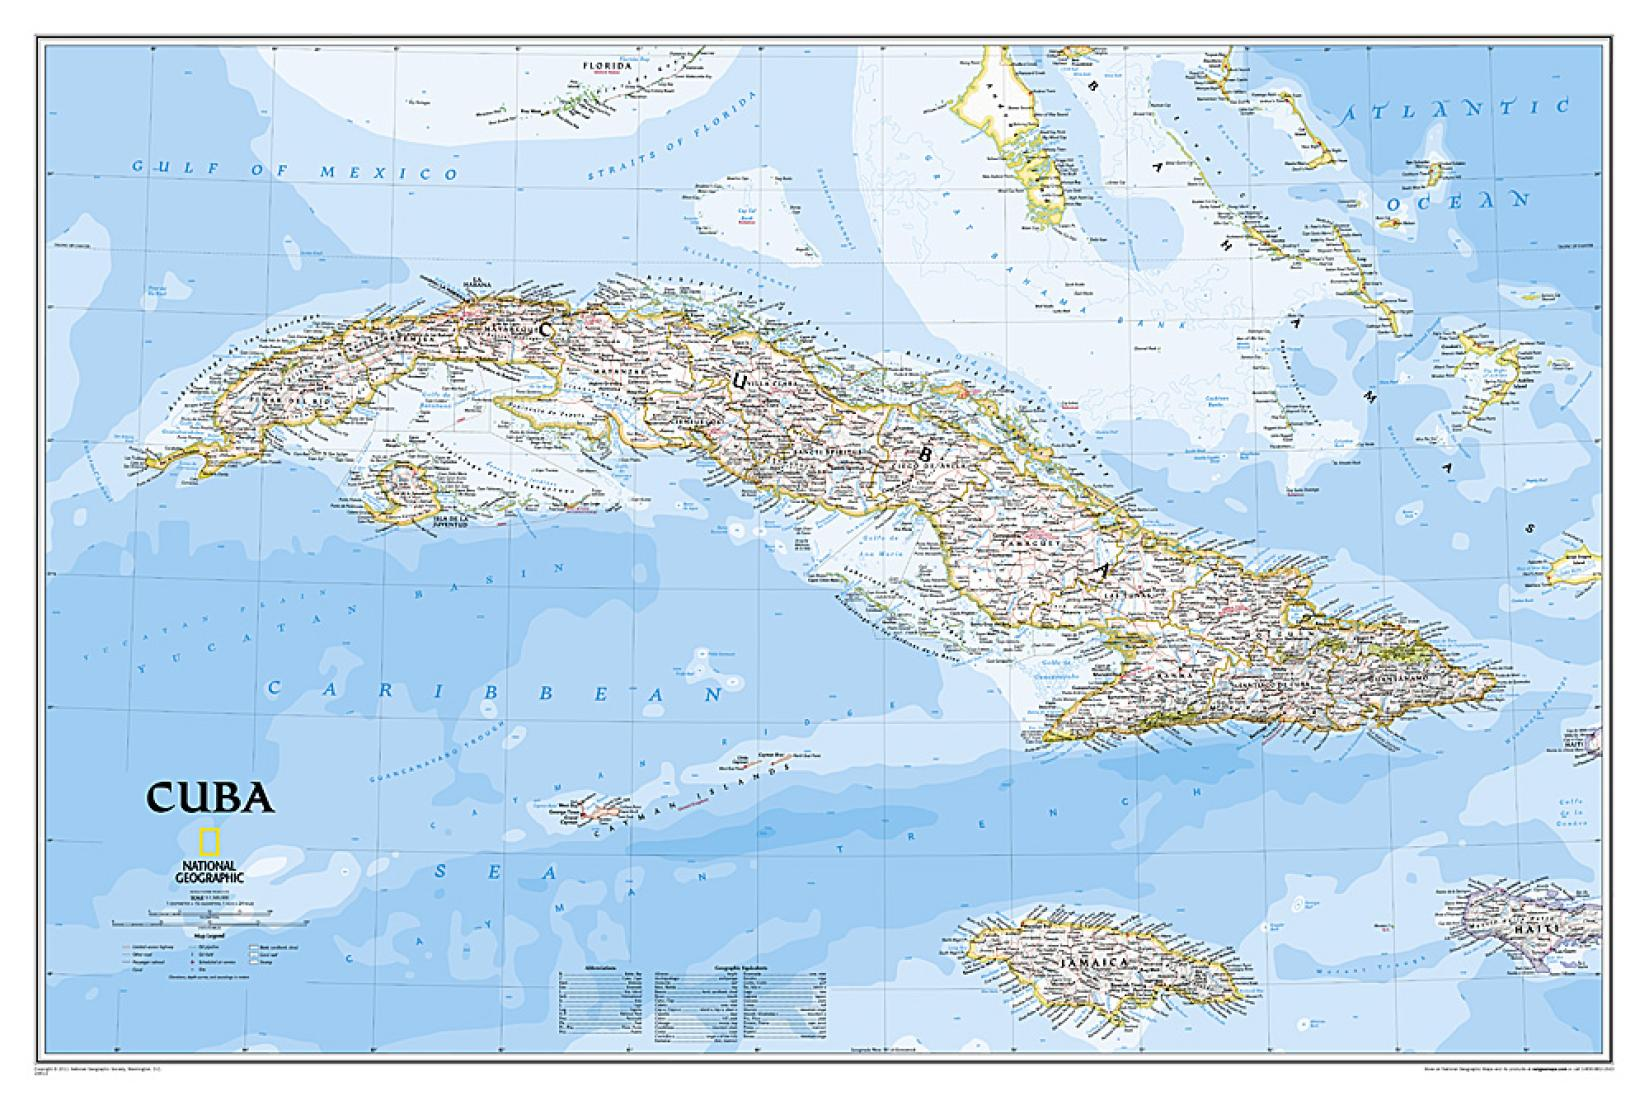 Cuba Florida Map.Cuba Classic Wall Map 36 X 24 Inches Tubed By National